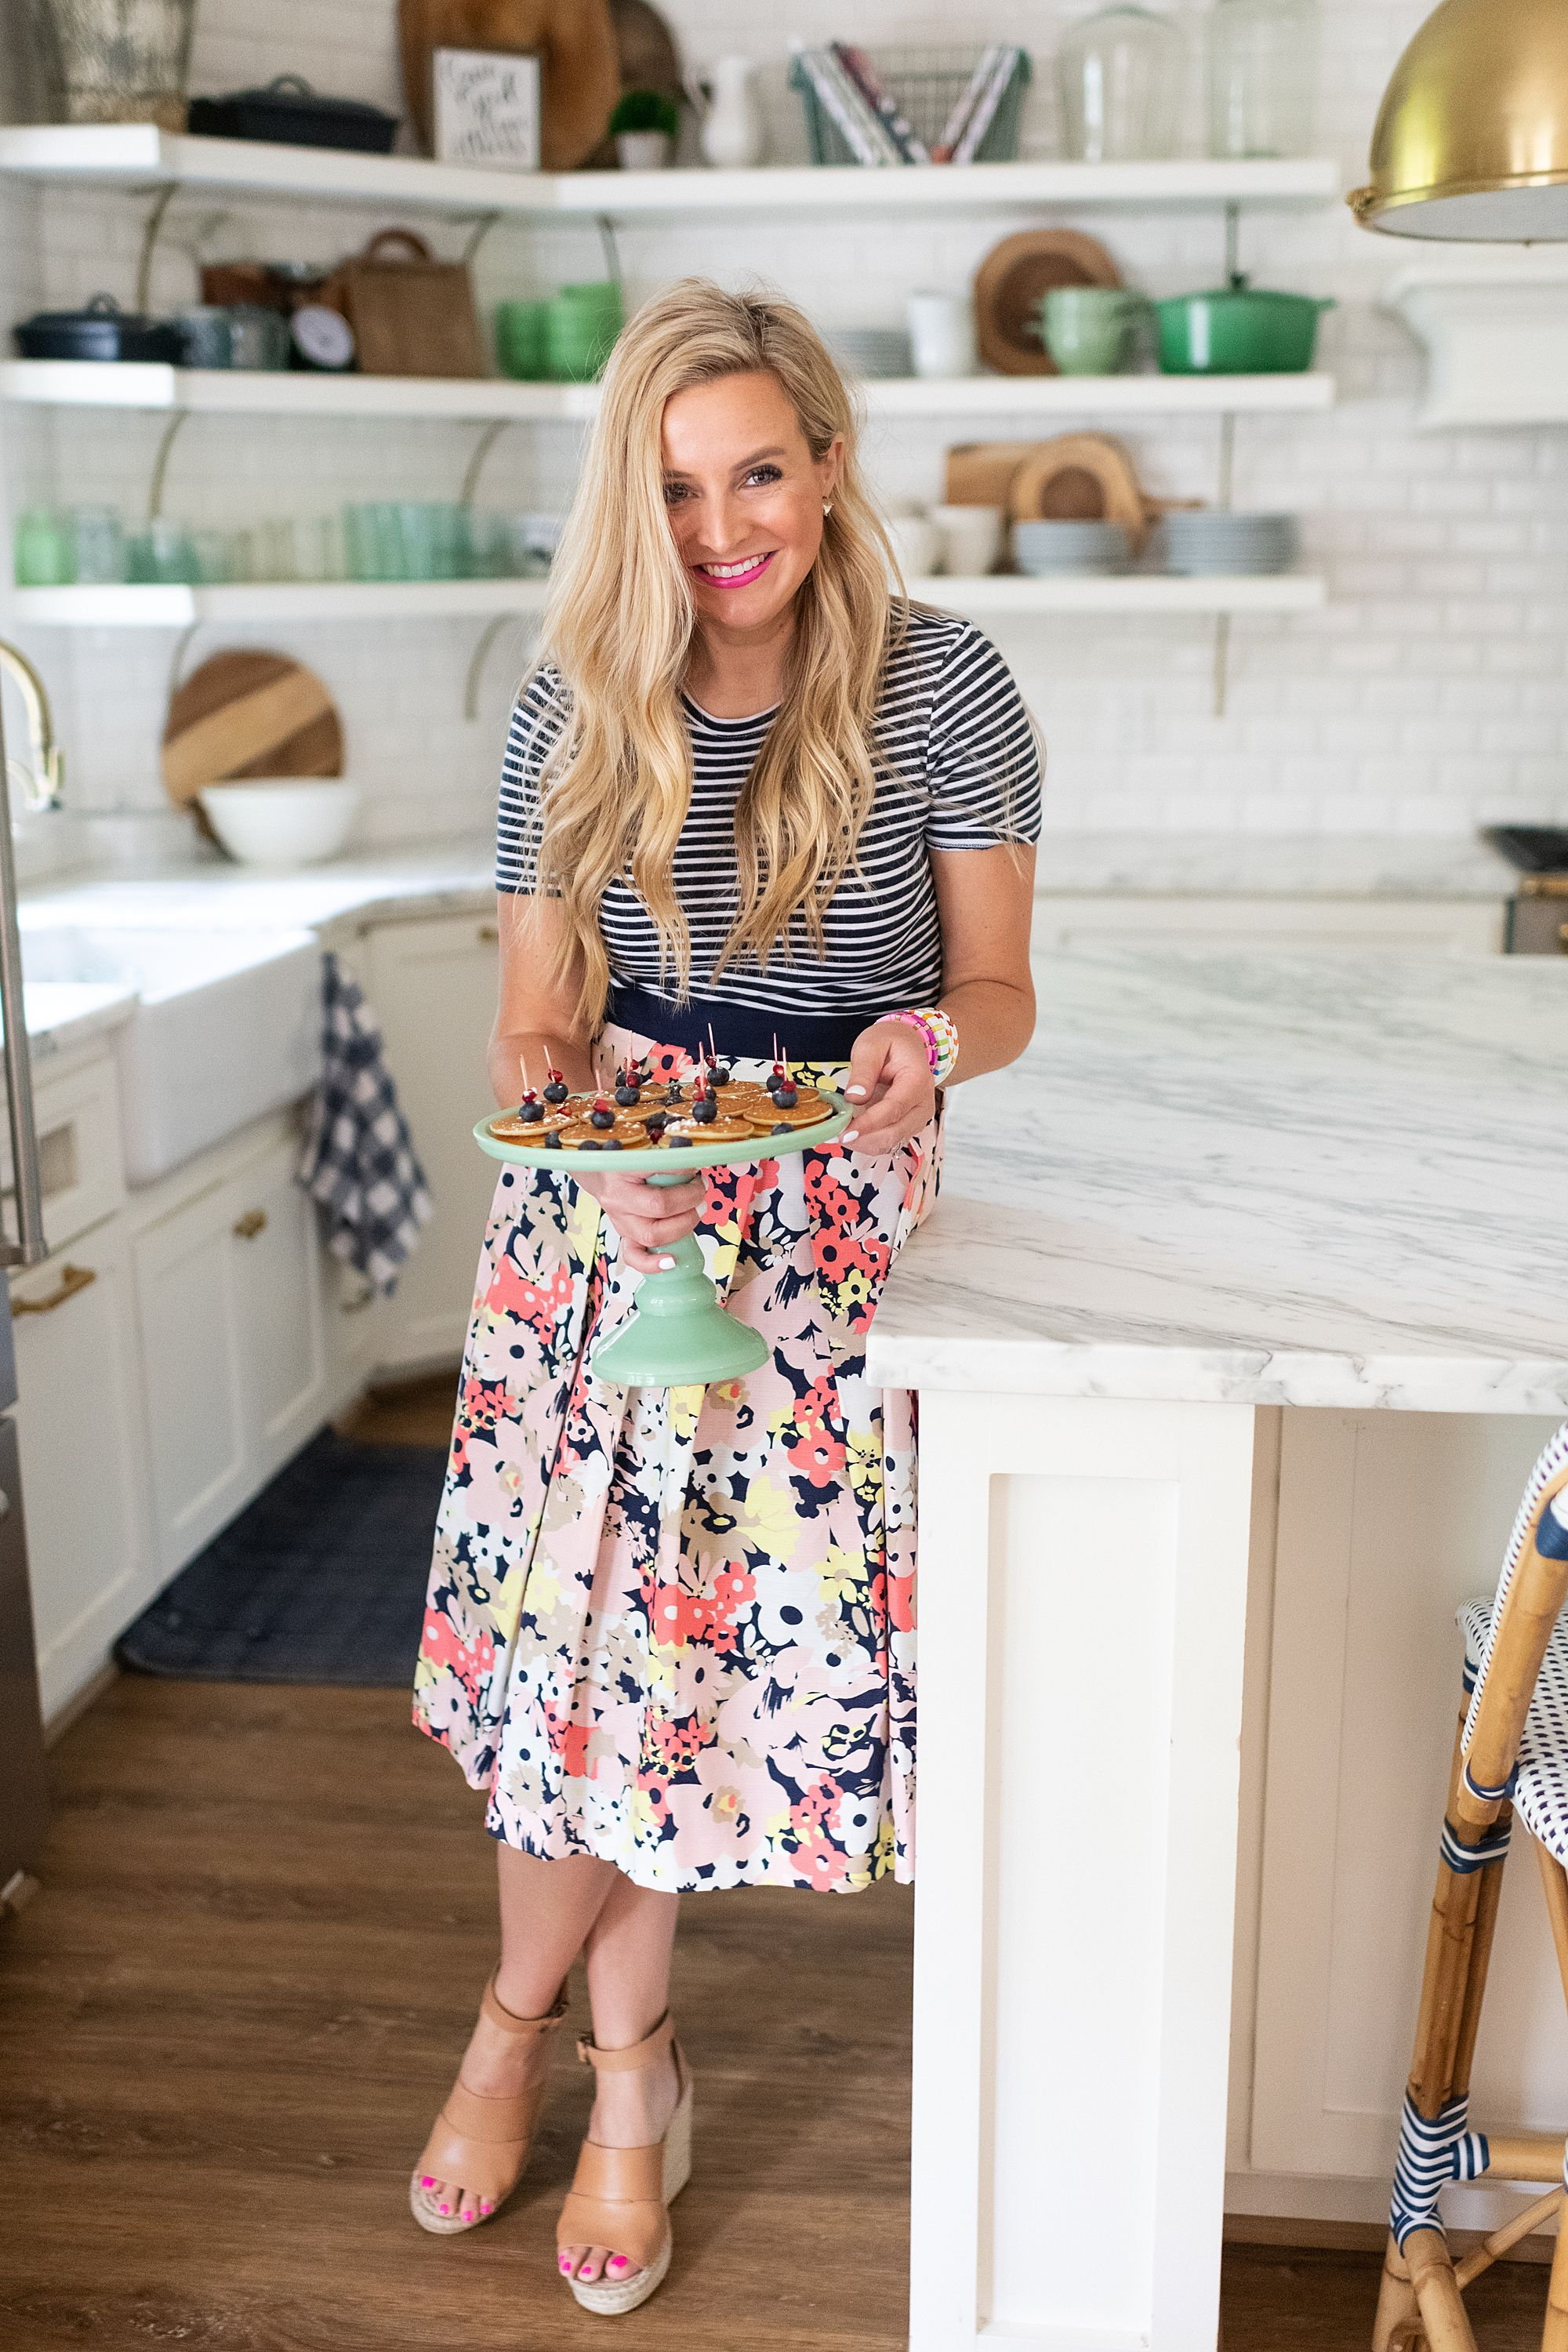 Four Outfits to Wear to a Brunch